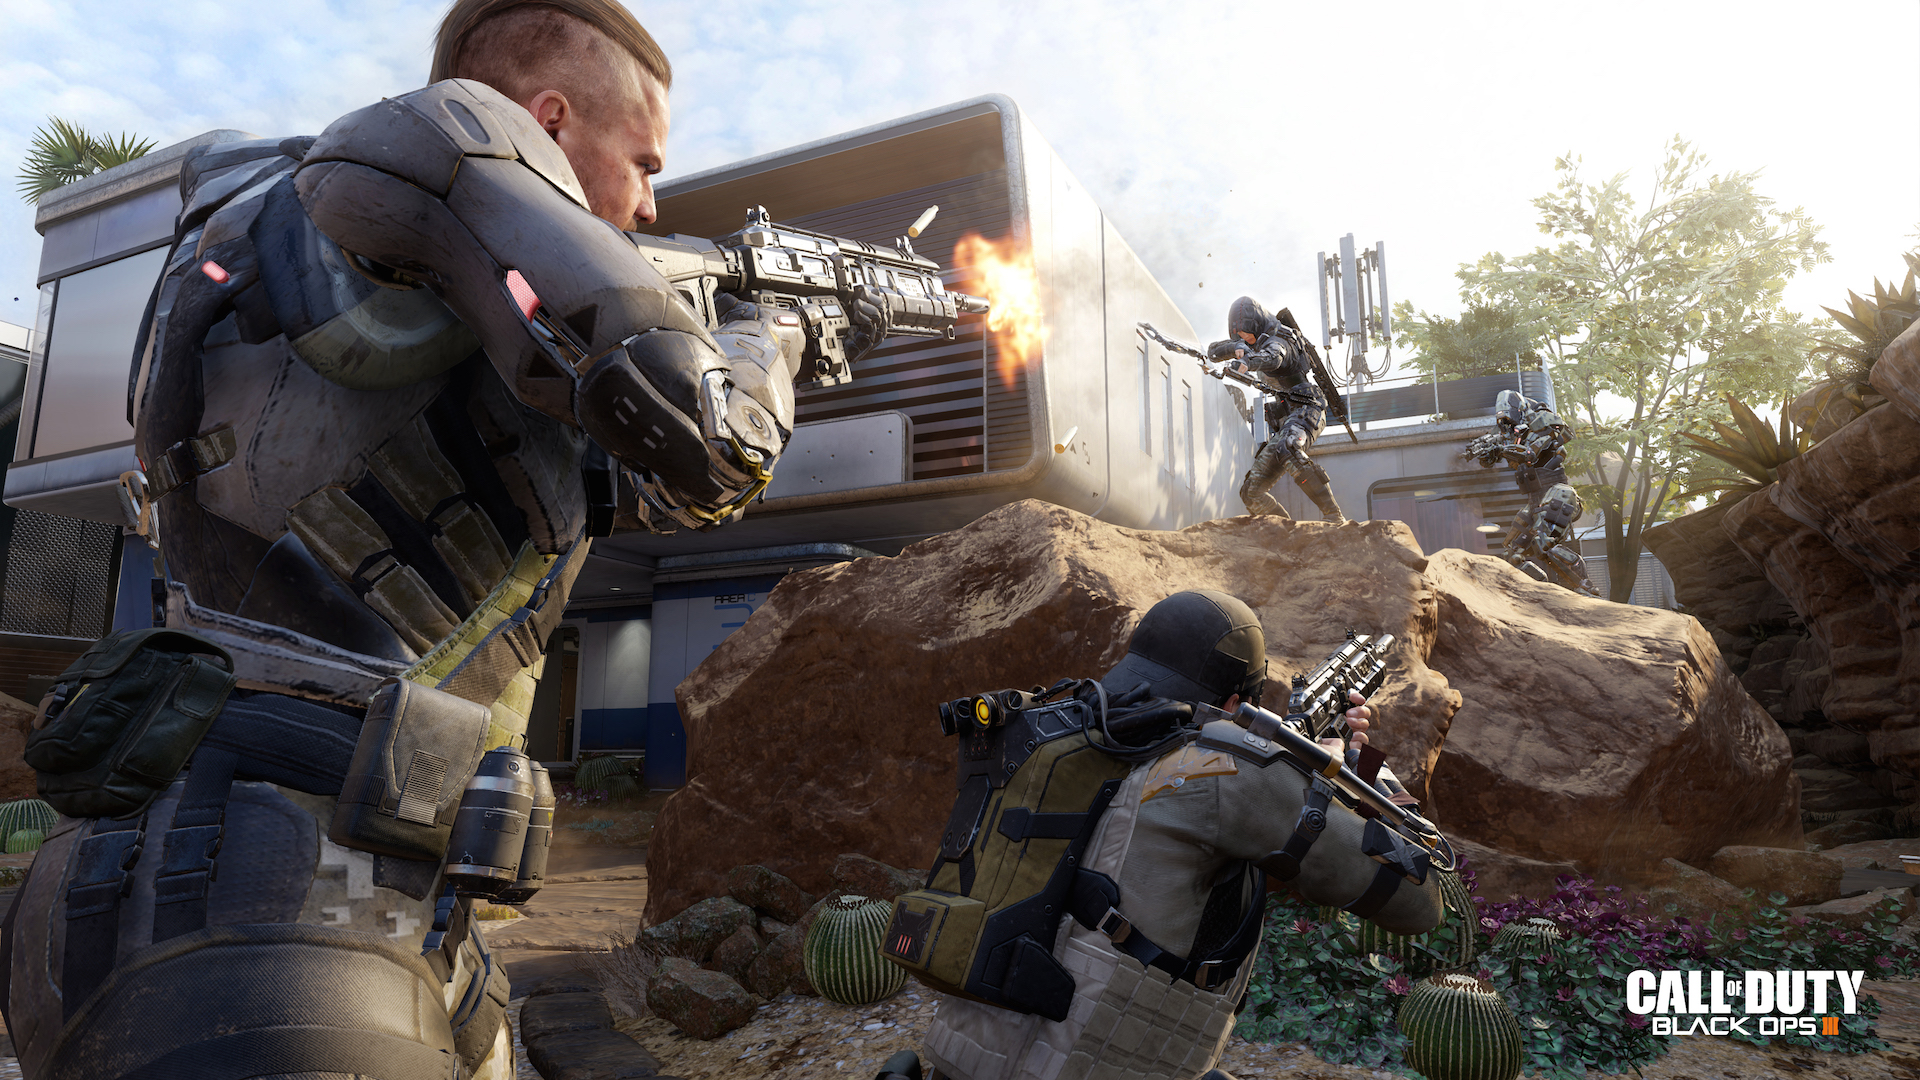 Call of Duty Black Ops 3 Multiplayer Beta